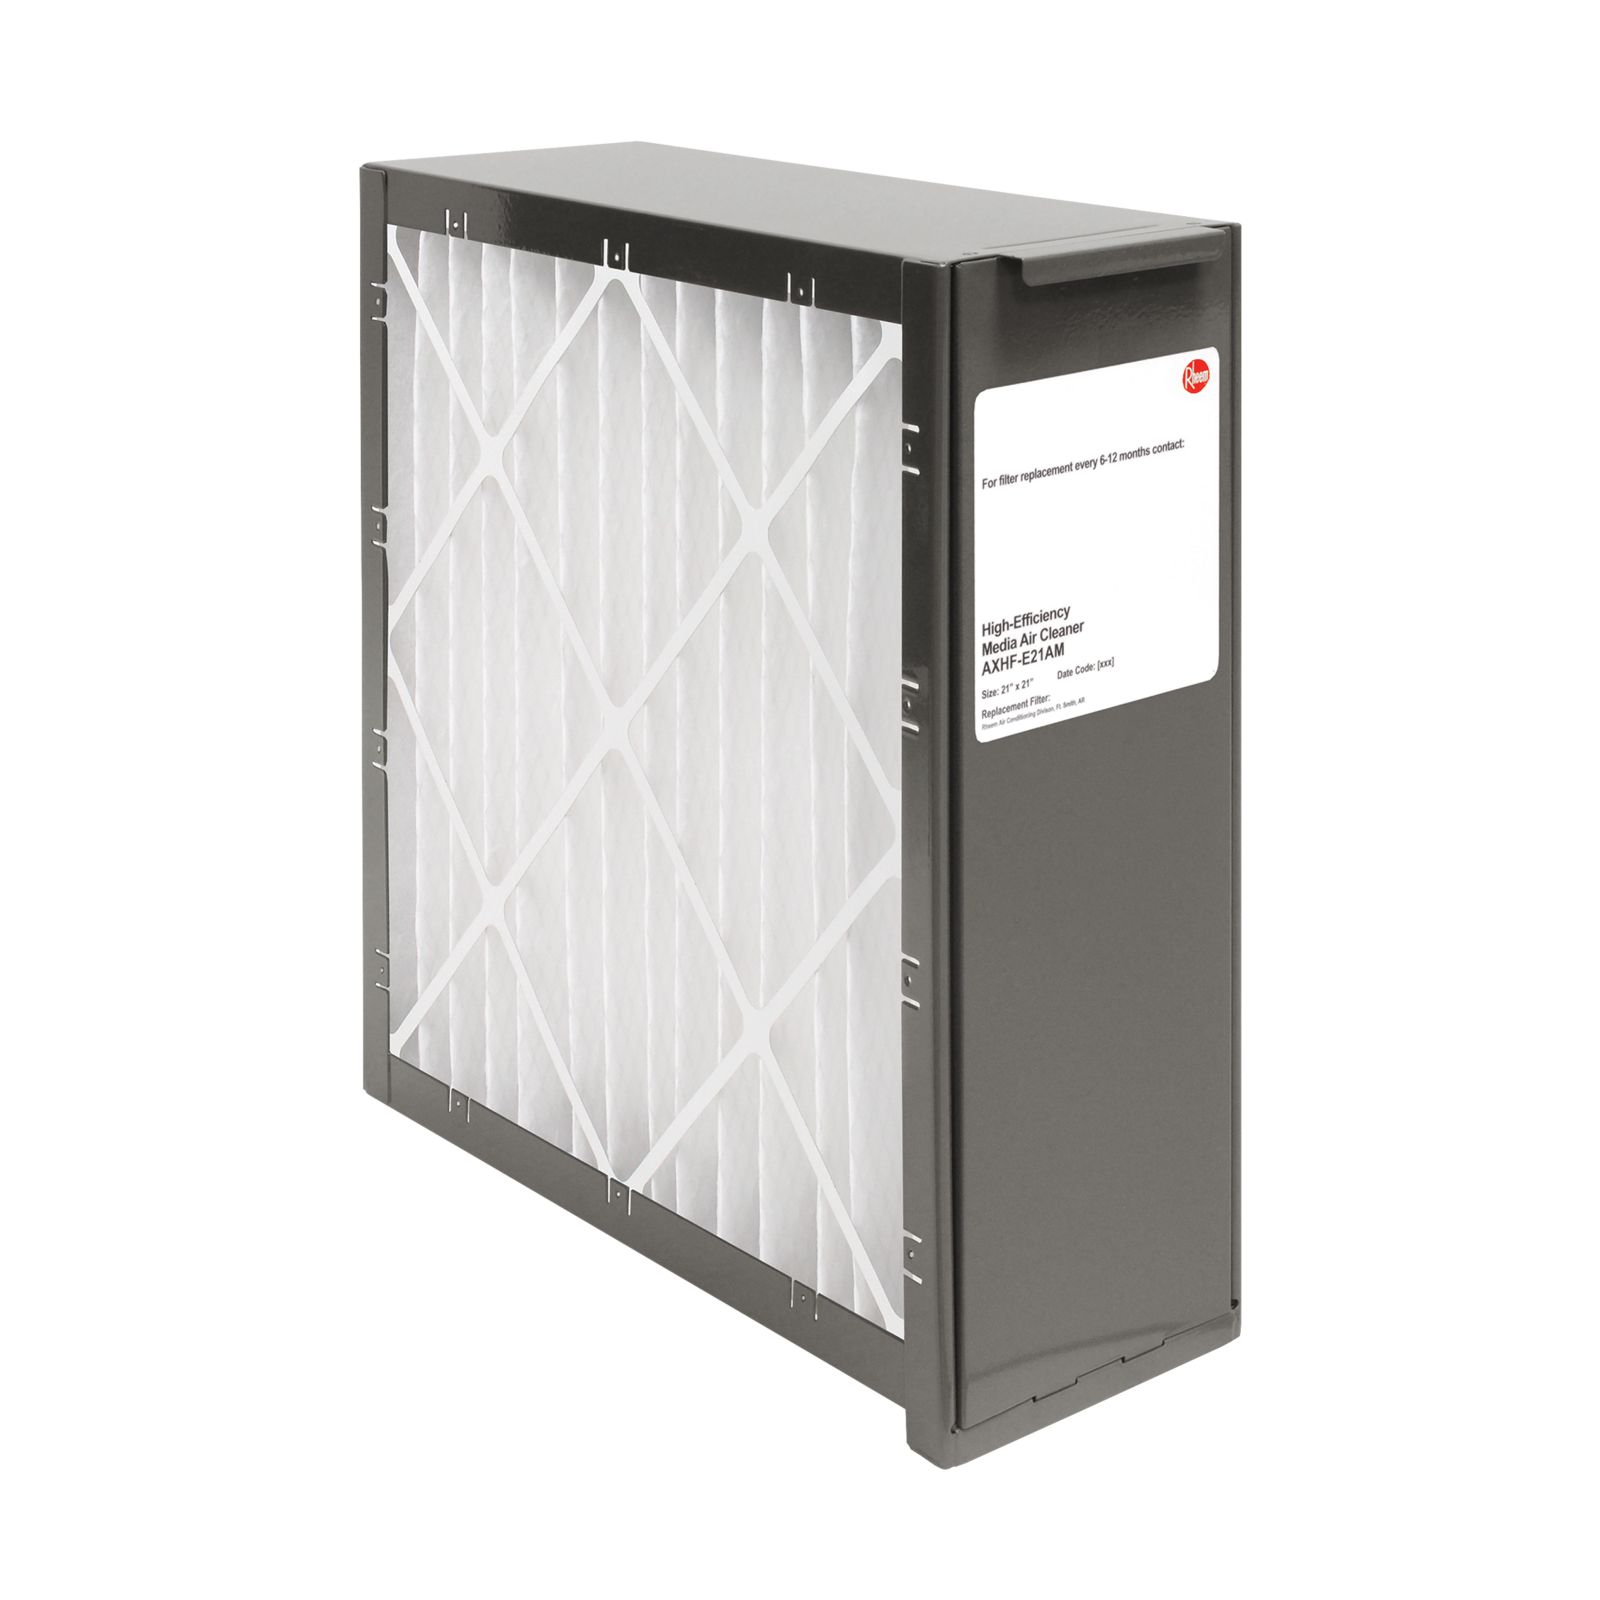 Rheem AXHF-E21AM - PROTECH Exact Fit Media Air Cleaners - Includes Merv 8 Filter Media - 21 1/8""